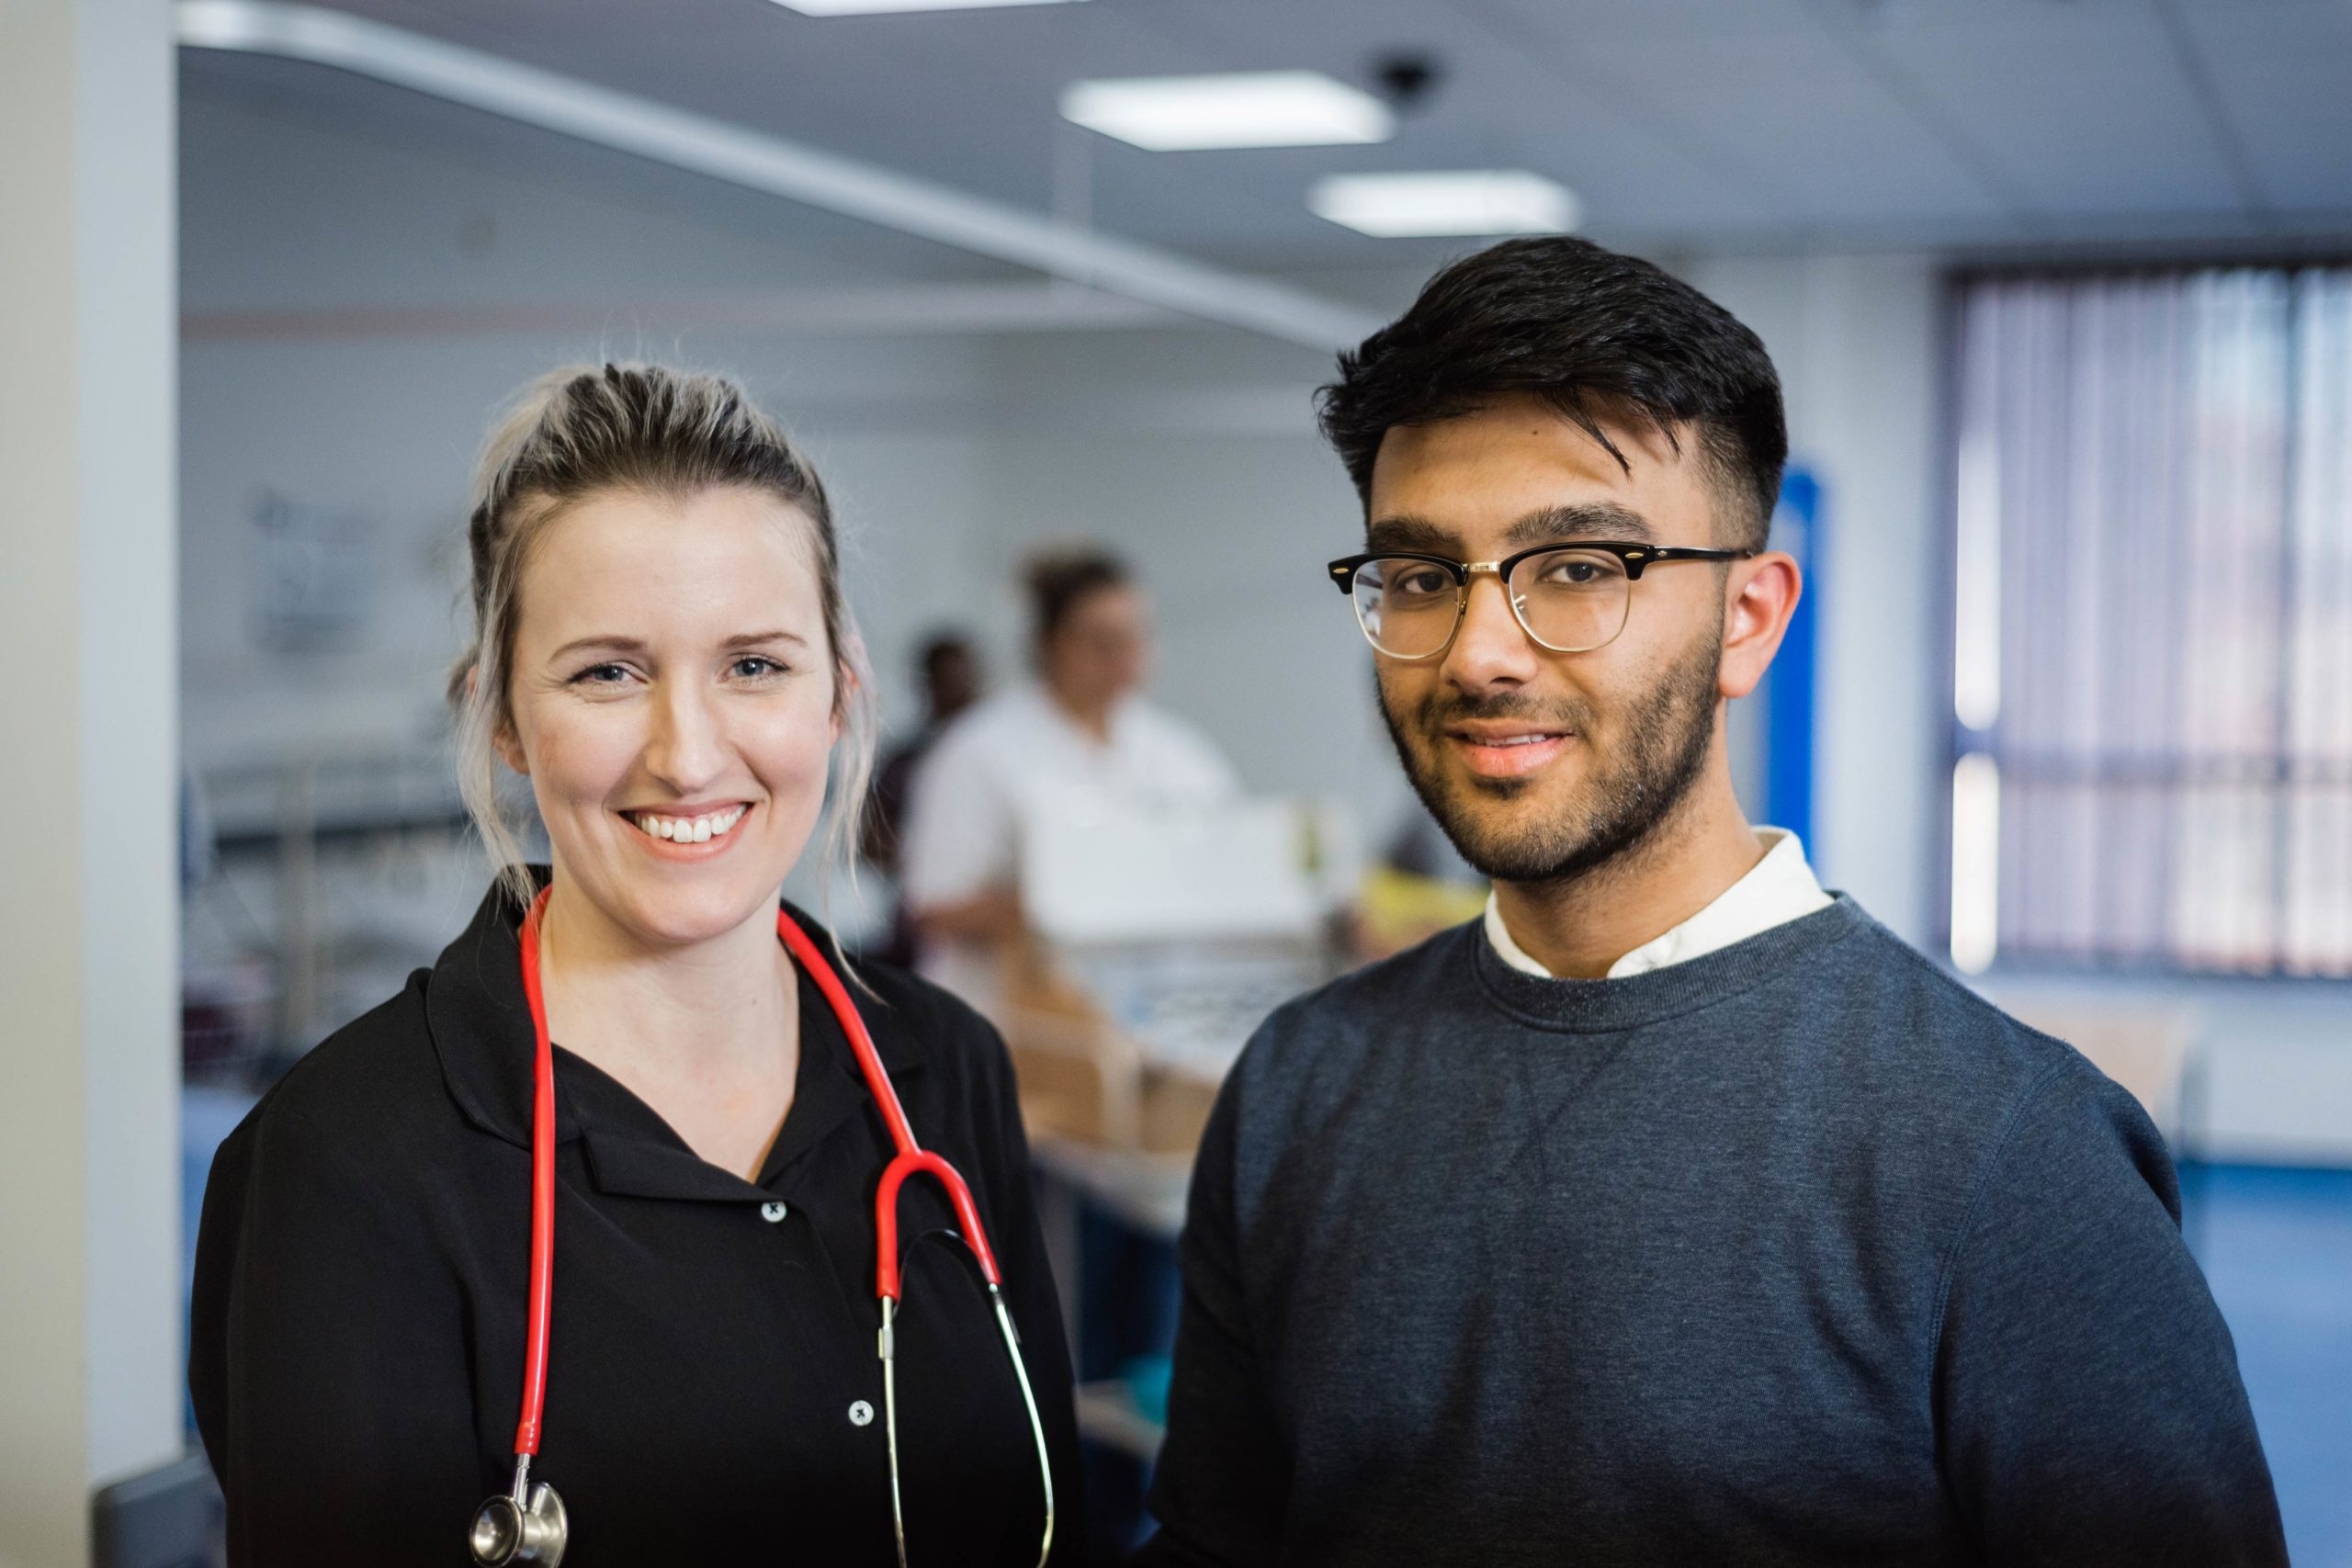 male and female student in a medical setting